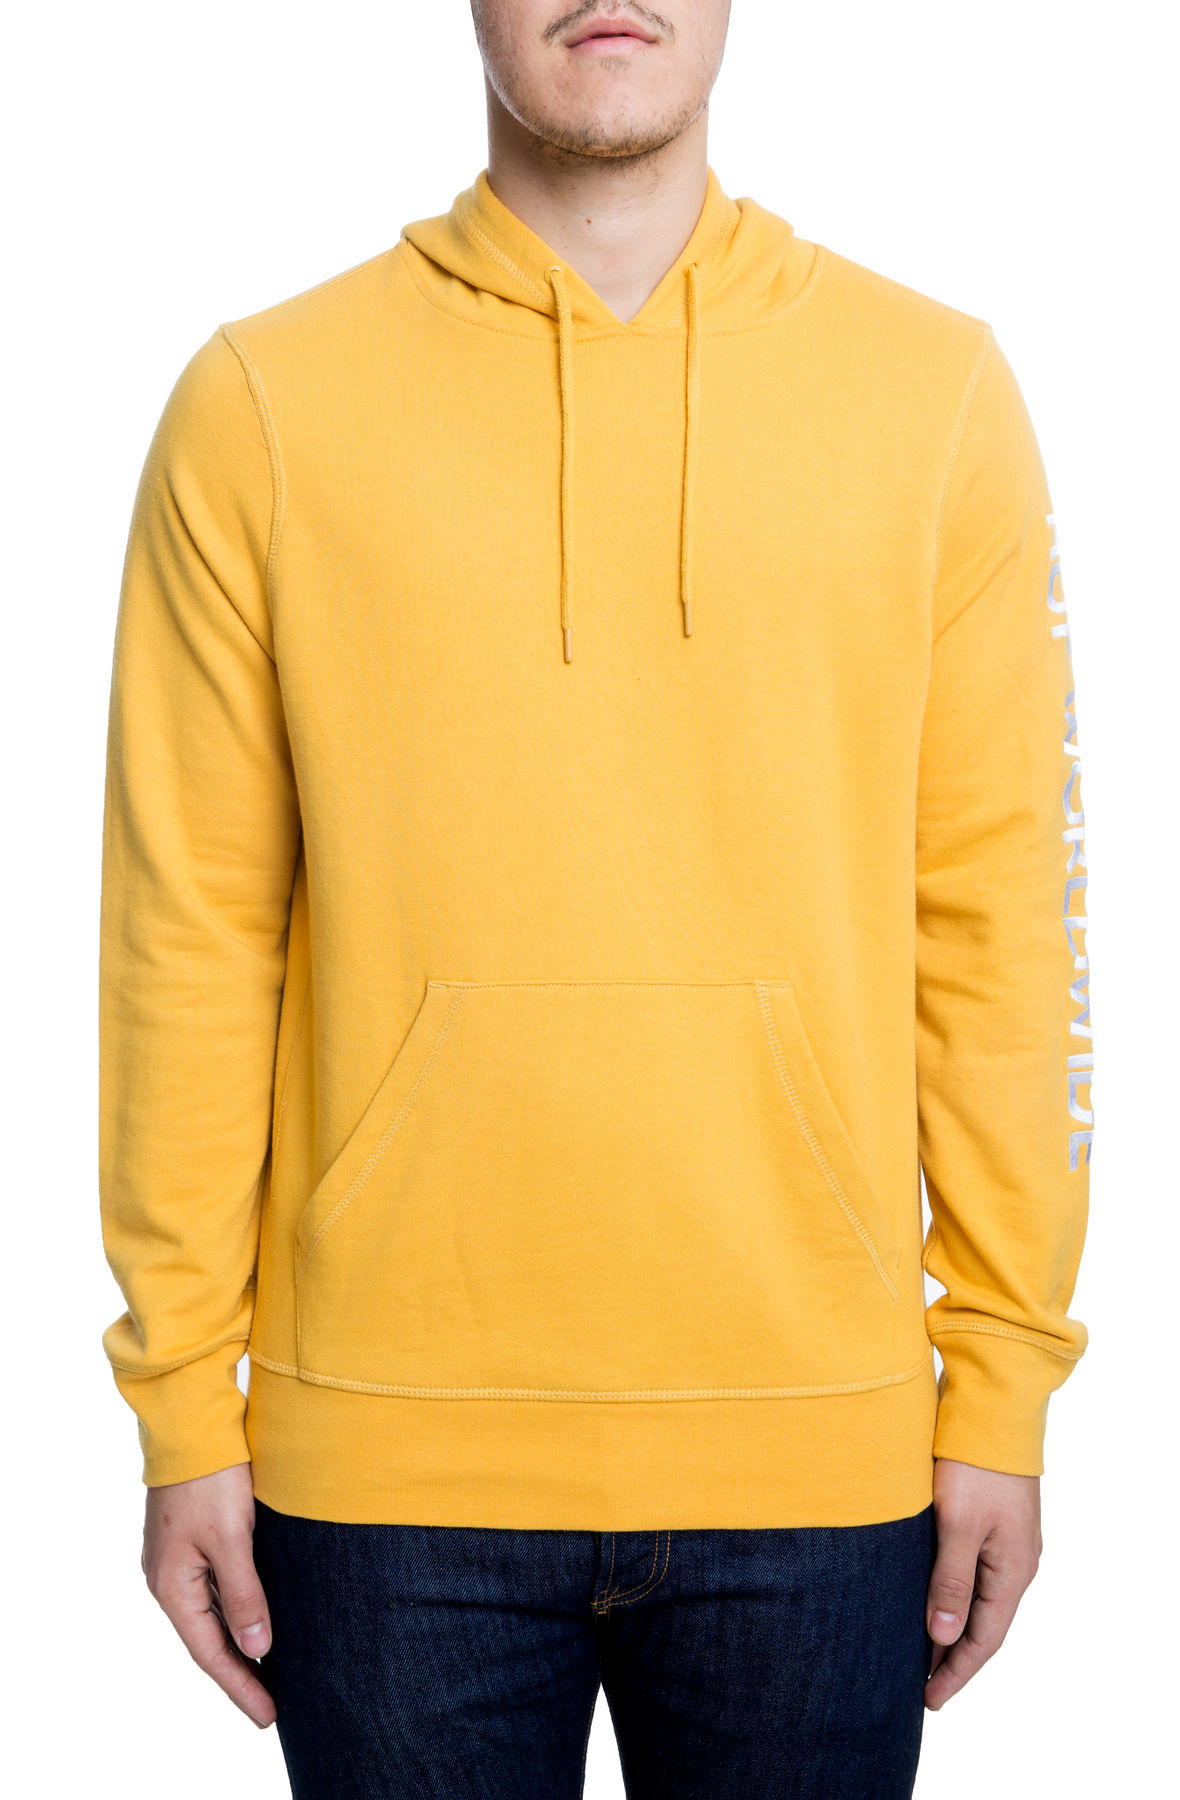 Image of The Mission Pullover Hoodie in Mineral Yellow